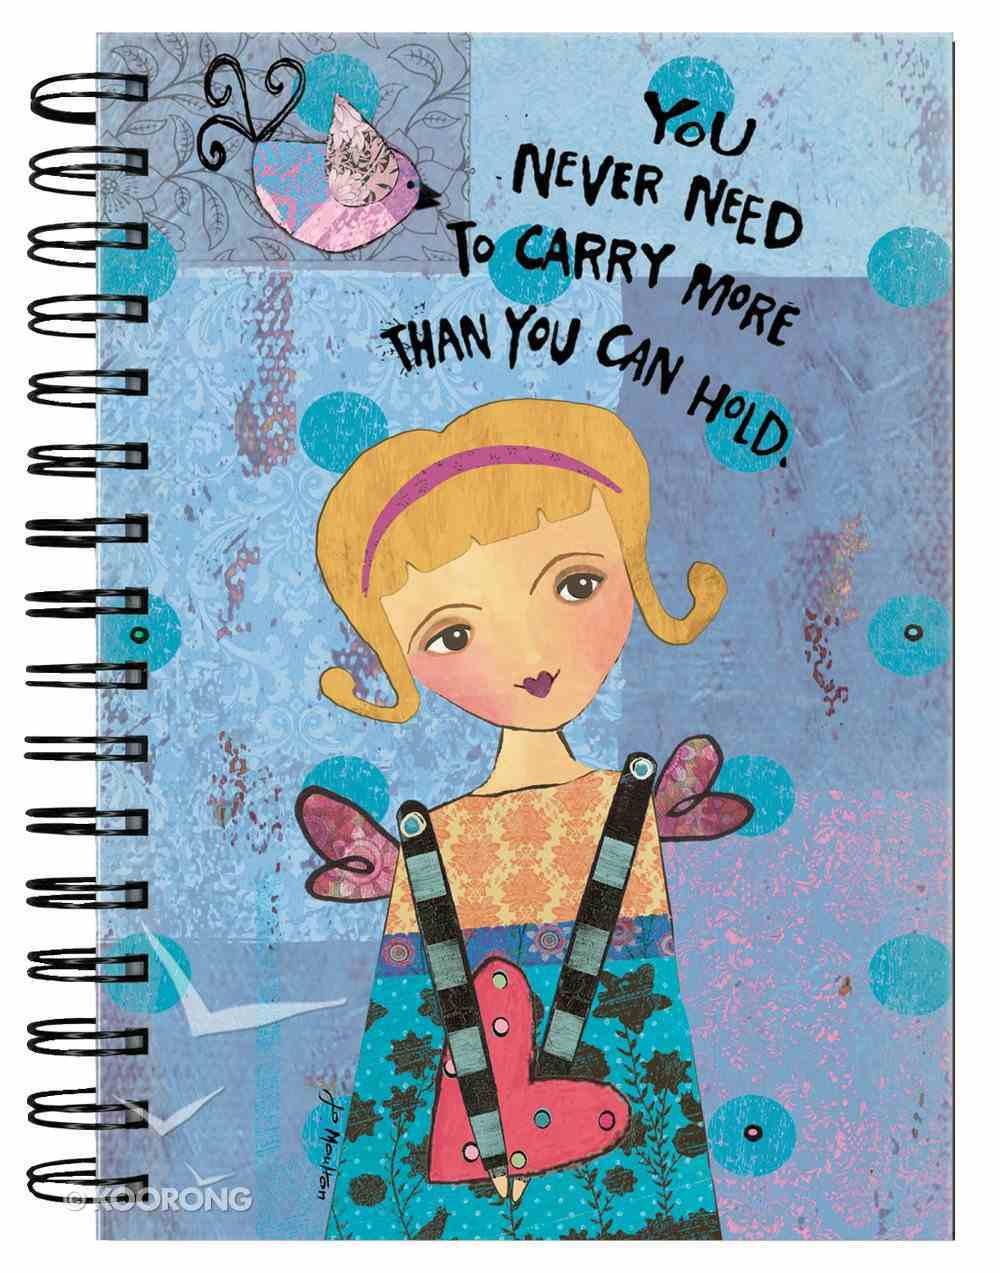 Spiral Journal: Guardian Angel 'You Never Need to Carry More Than You Can Hold' Spiral